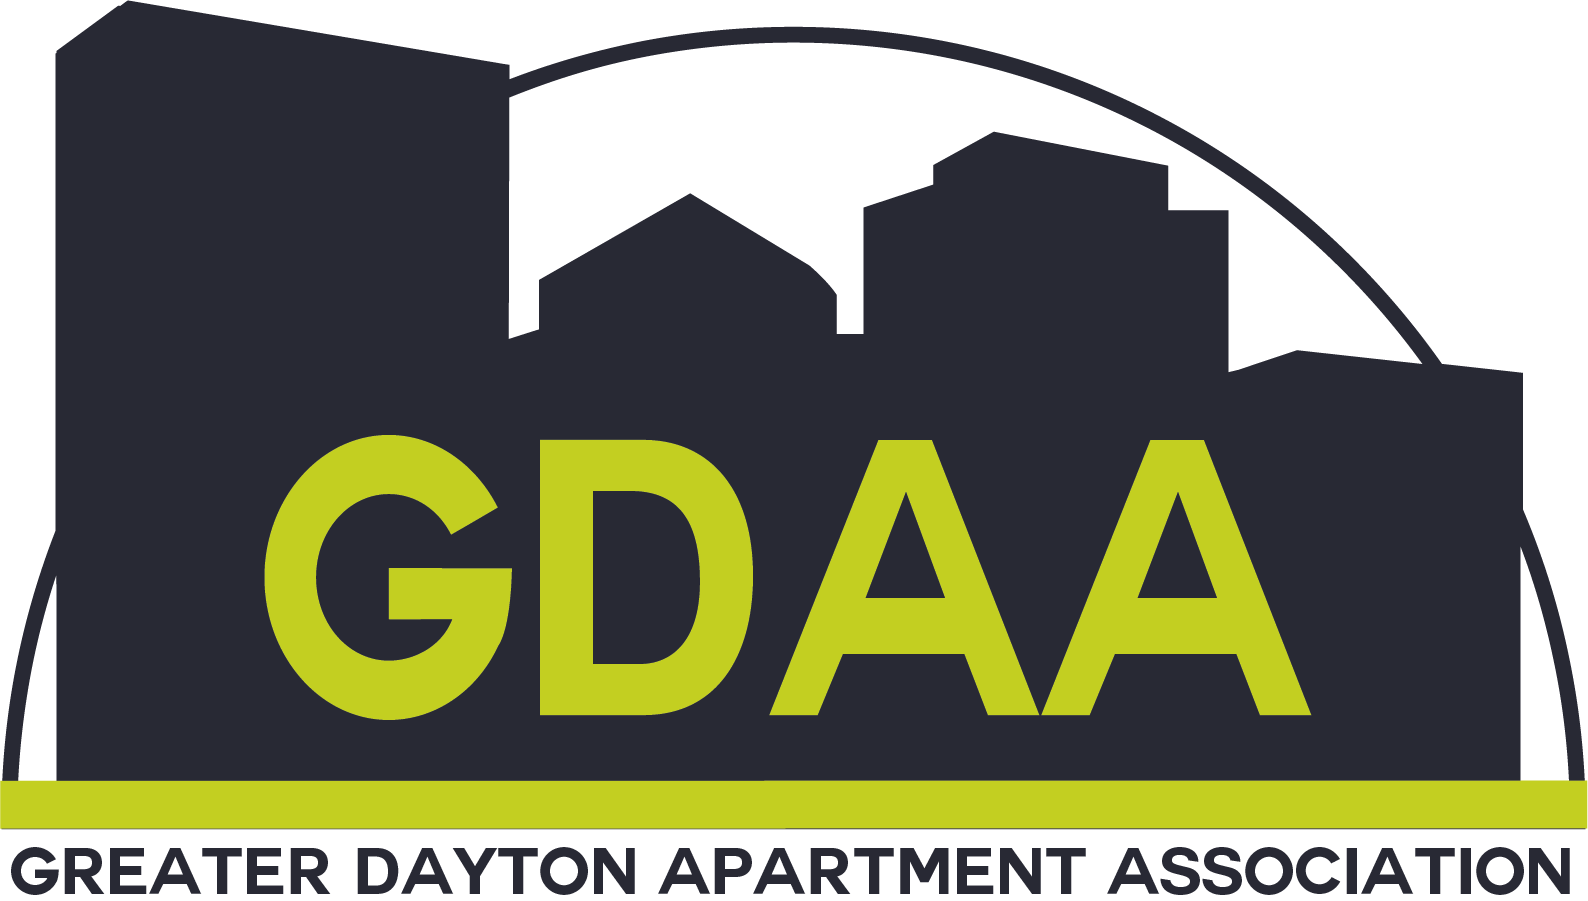 Greater Dayton Apartment Association Logo